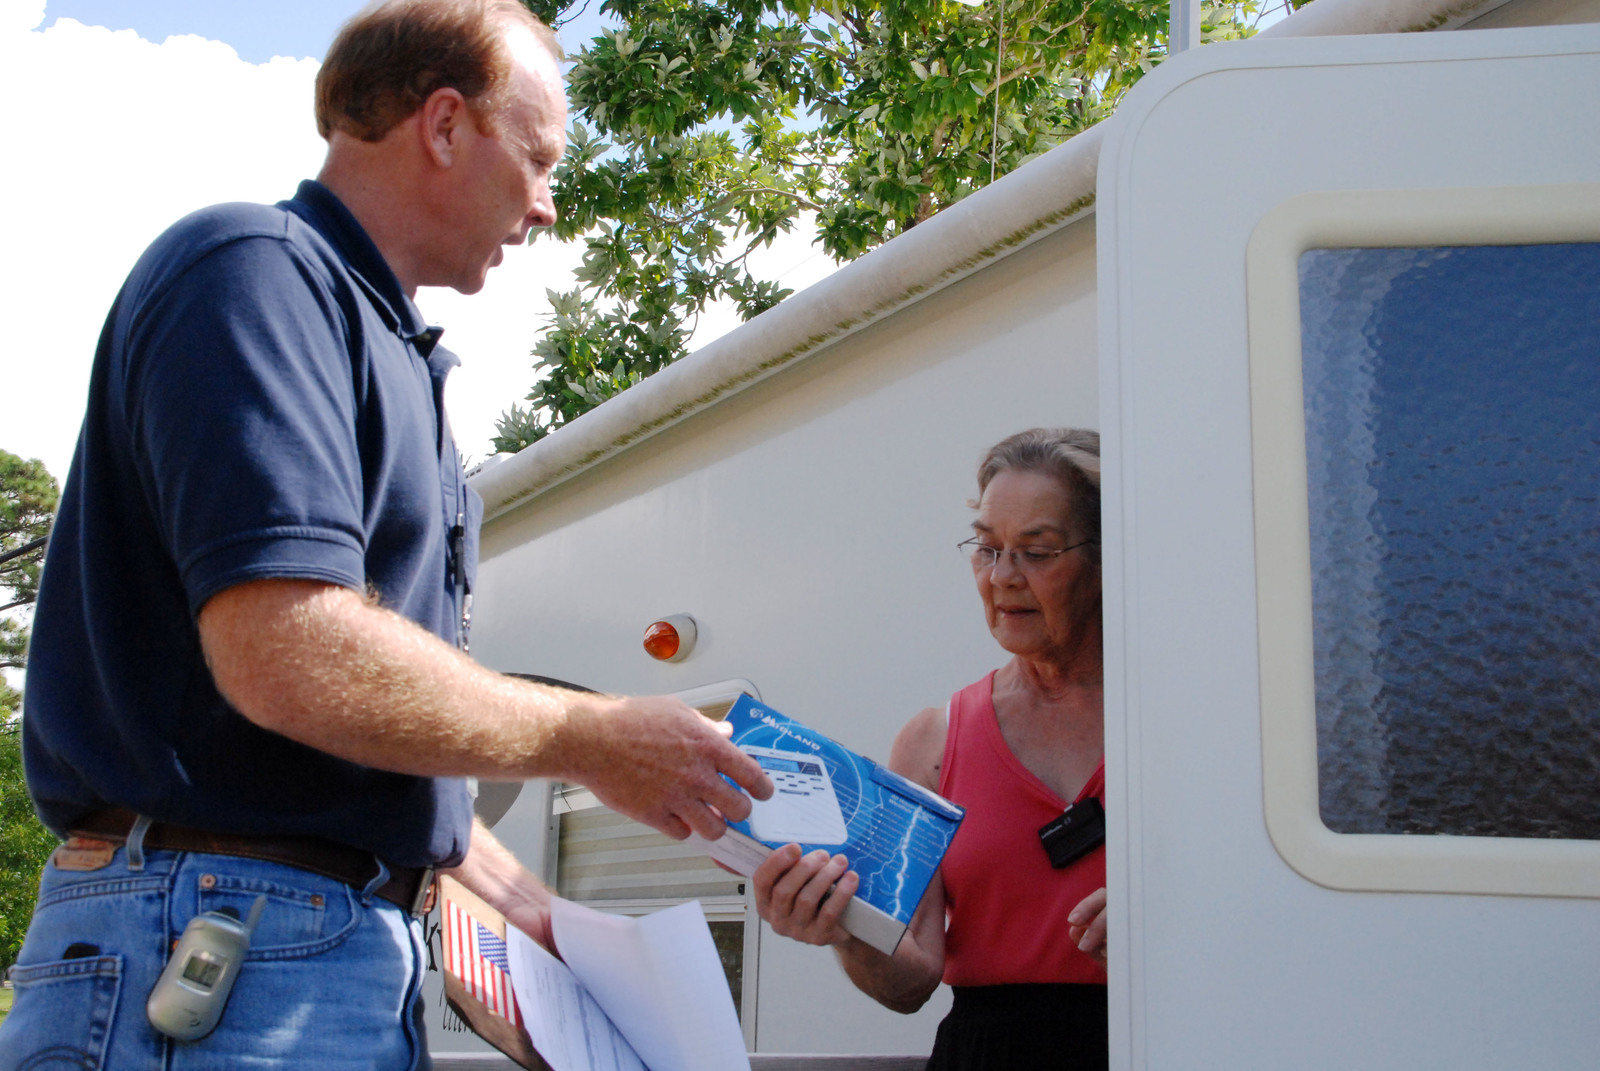 [Hurricane Katrina] Pascagoula, MS, July 31, 2008 - -FEMA housing advisor Bobby Russell gives a NOAA Weather Radio to Gloria Thompson. FEMA is issuing weather radios to all applicants still living in FEMA travel trailers and mobile homes in Mississippi. Jennifer Smits/FEMA.